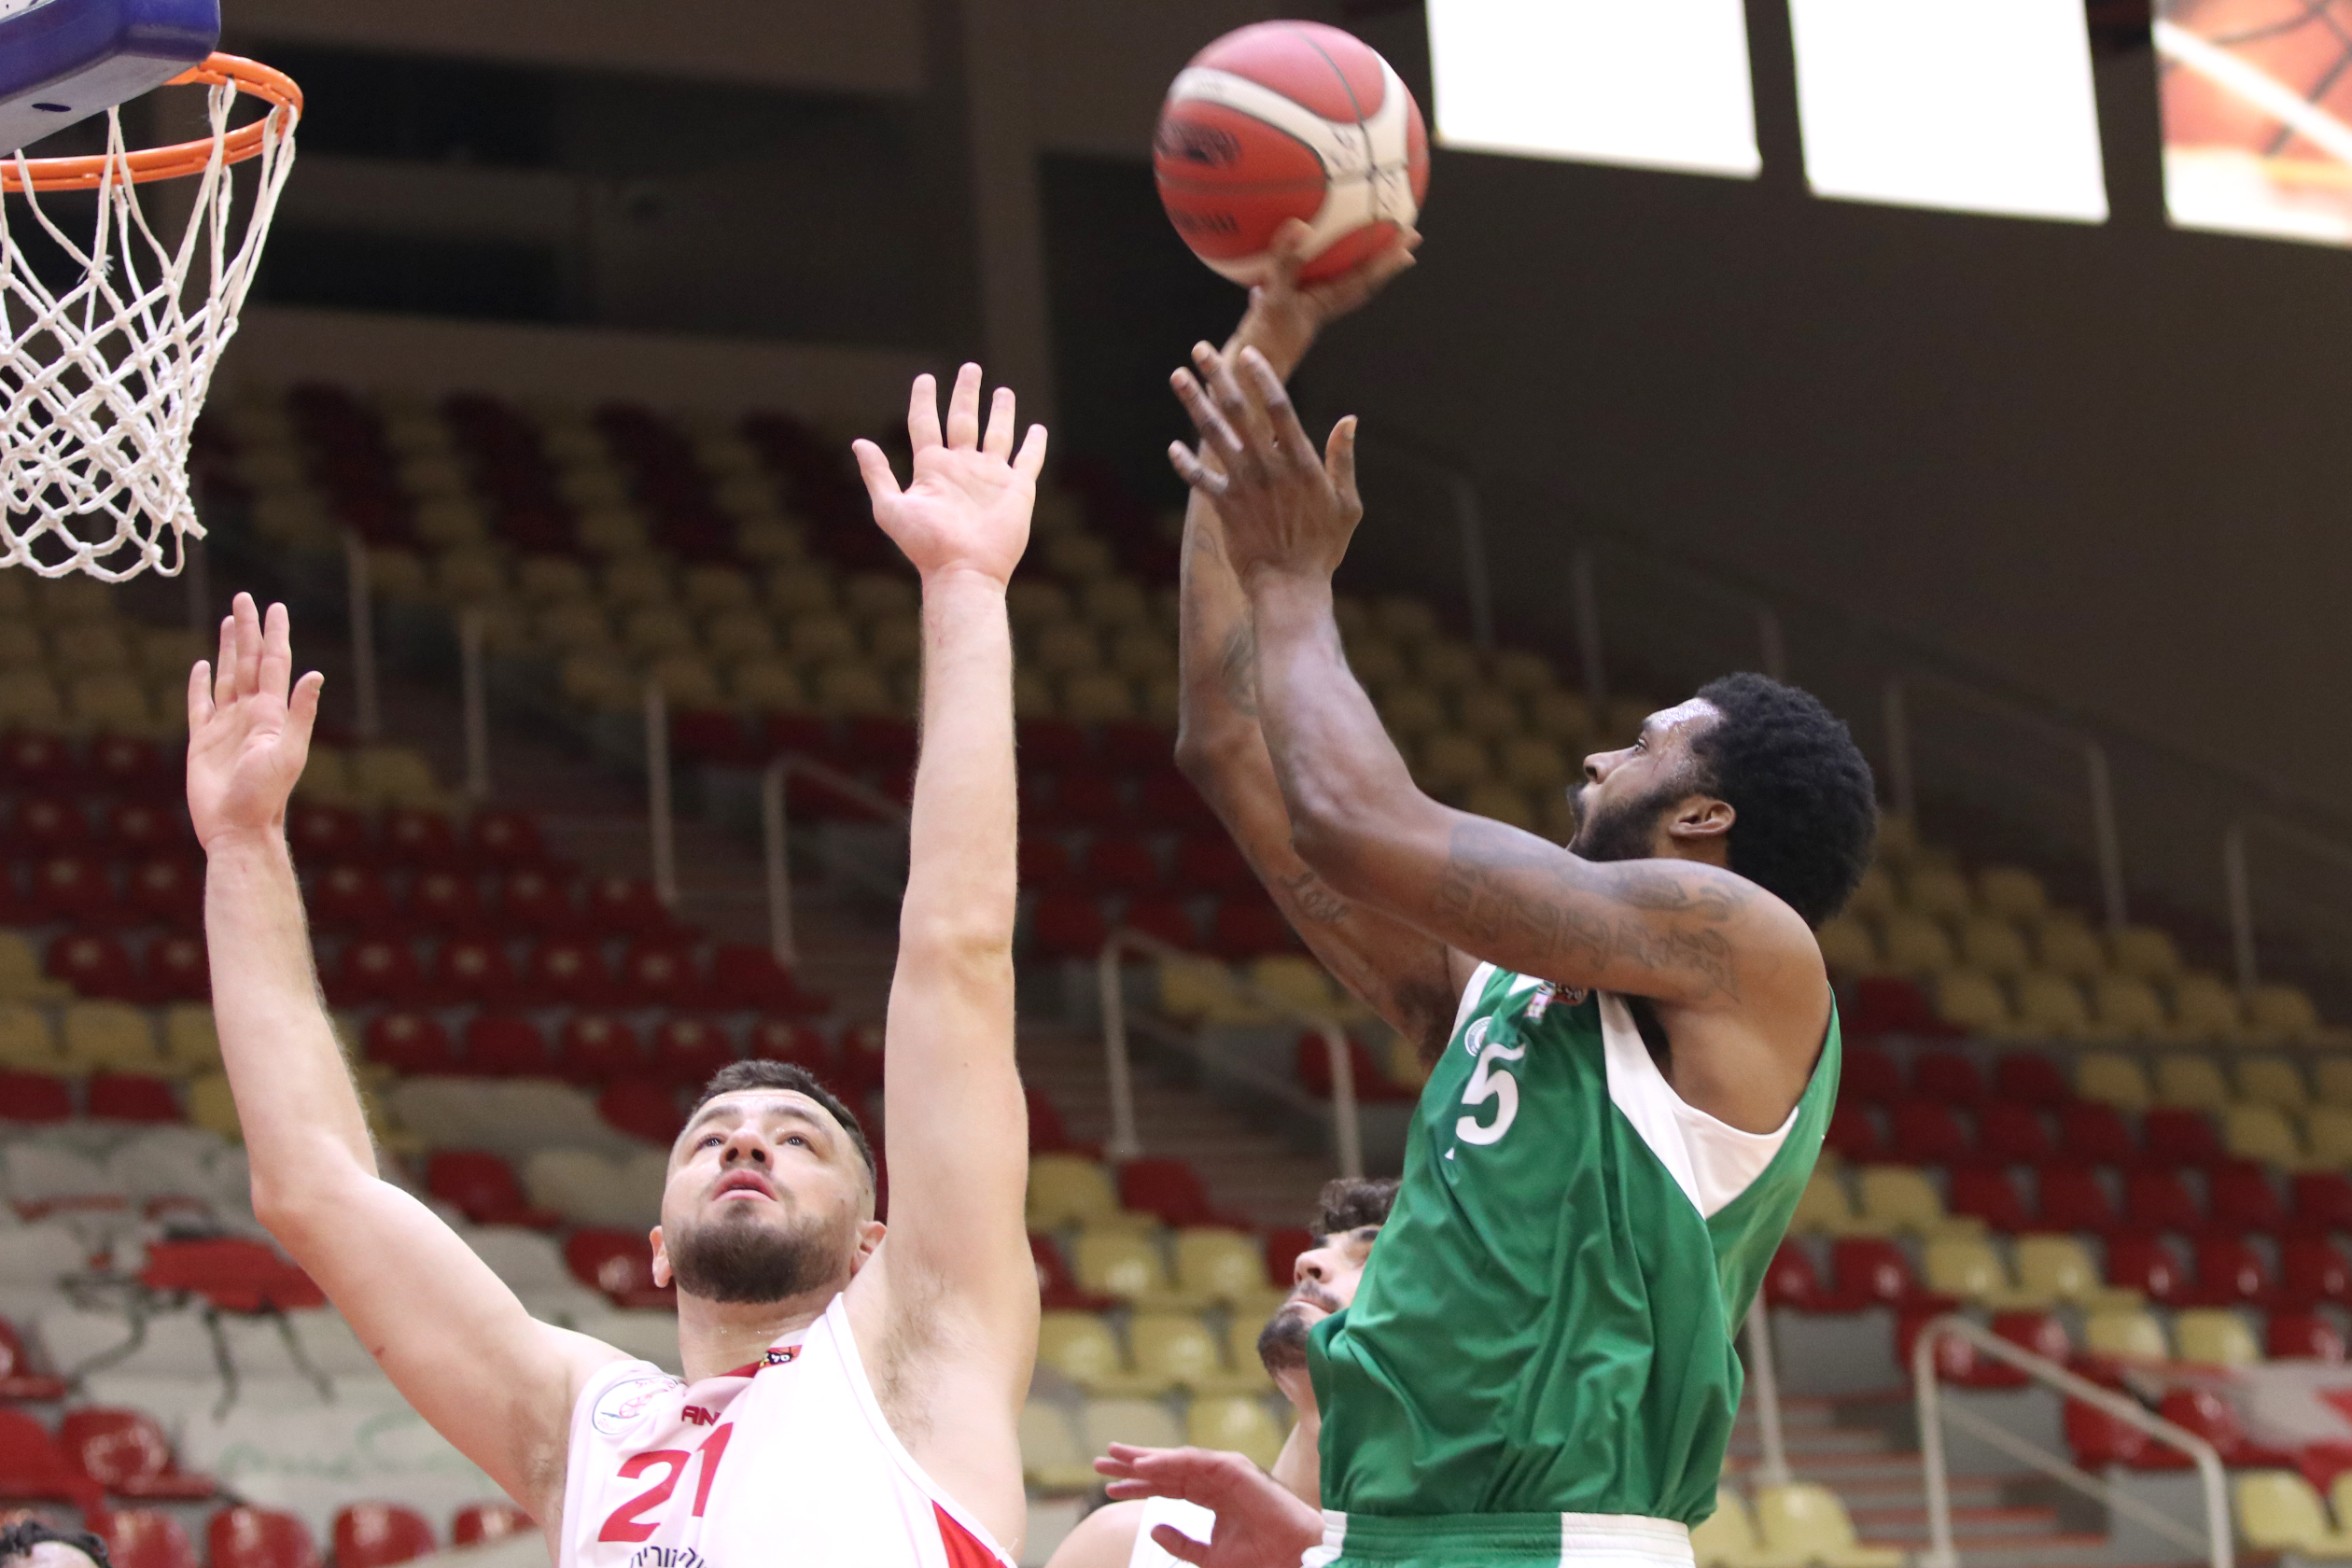 Day 14: Gilboa/Galil - Maccabi Haifa ...